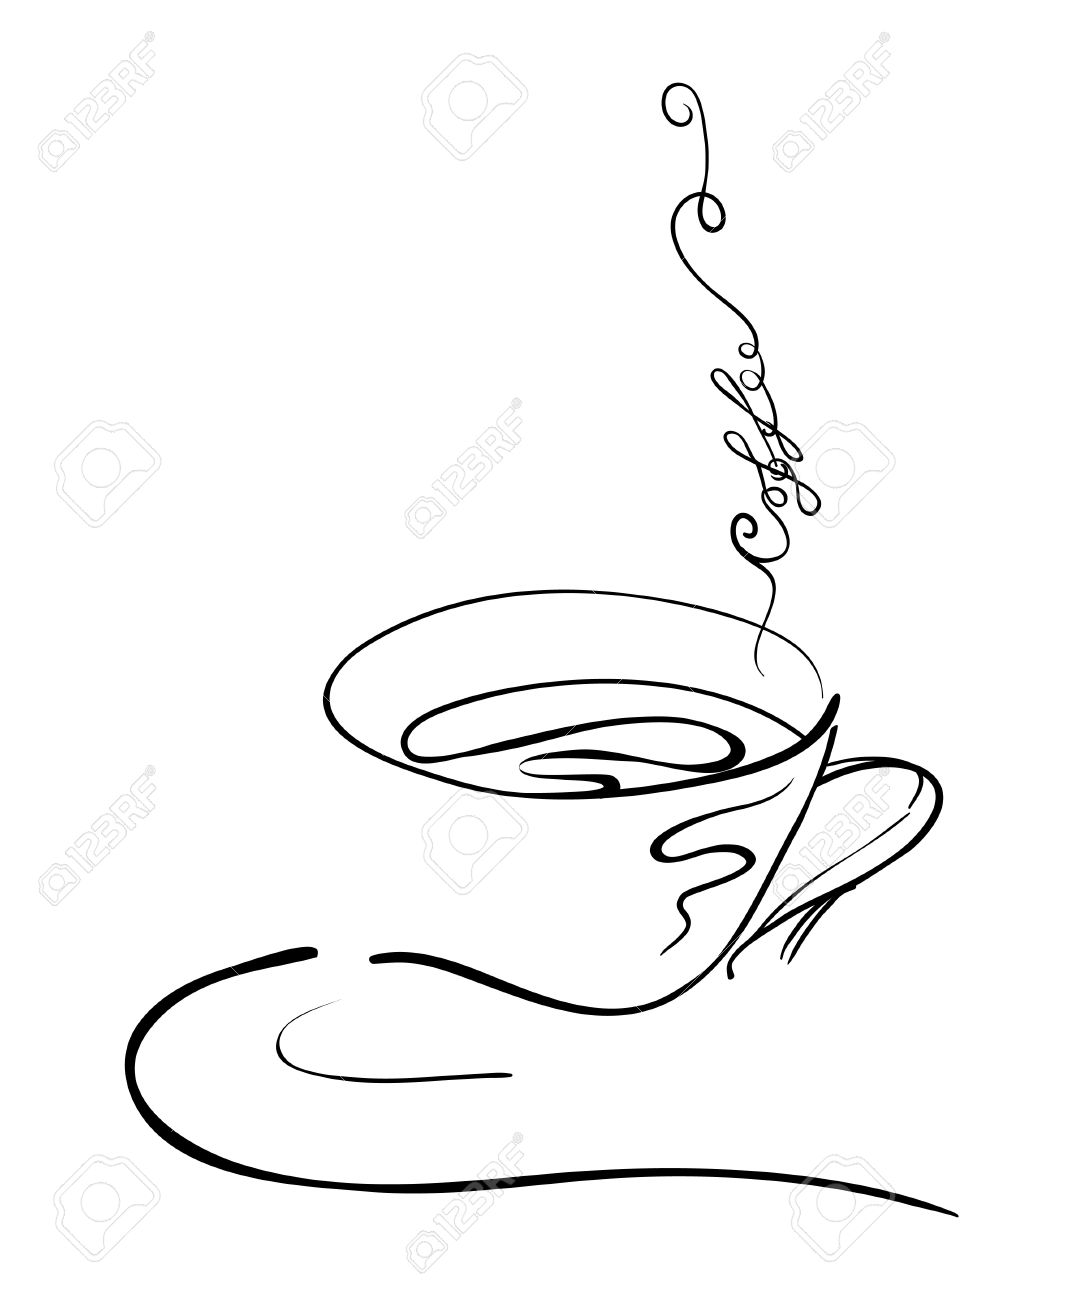 1083x1300 Illustration Hand Drawing Of A Hot Coffee Cup On A Saucer